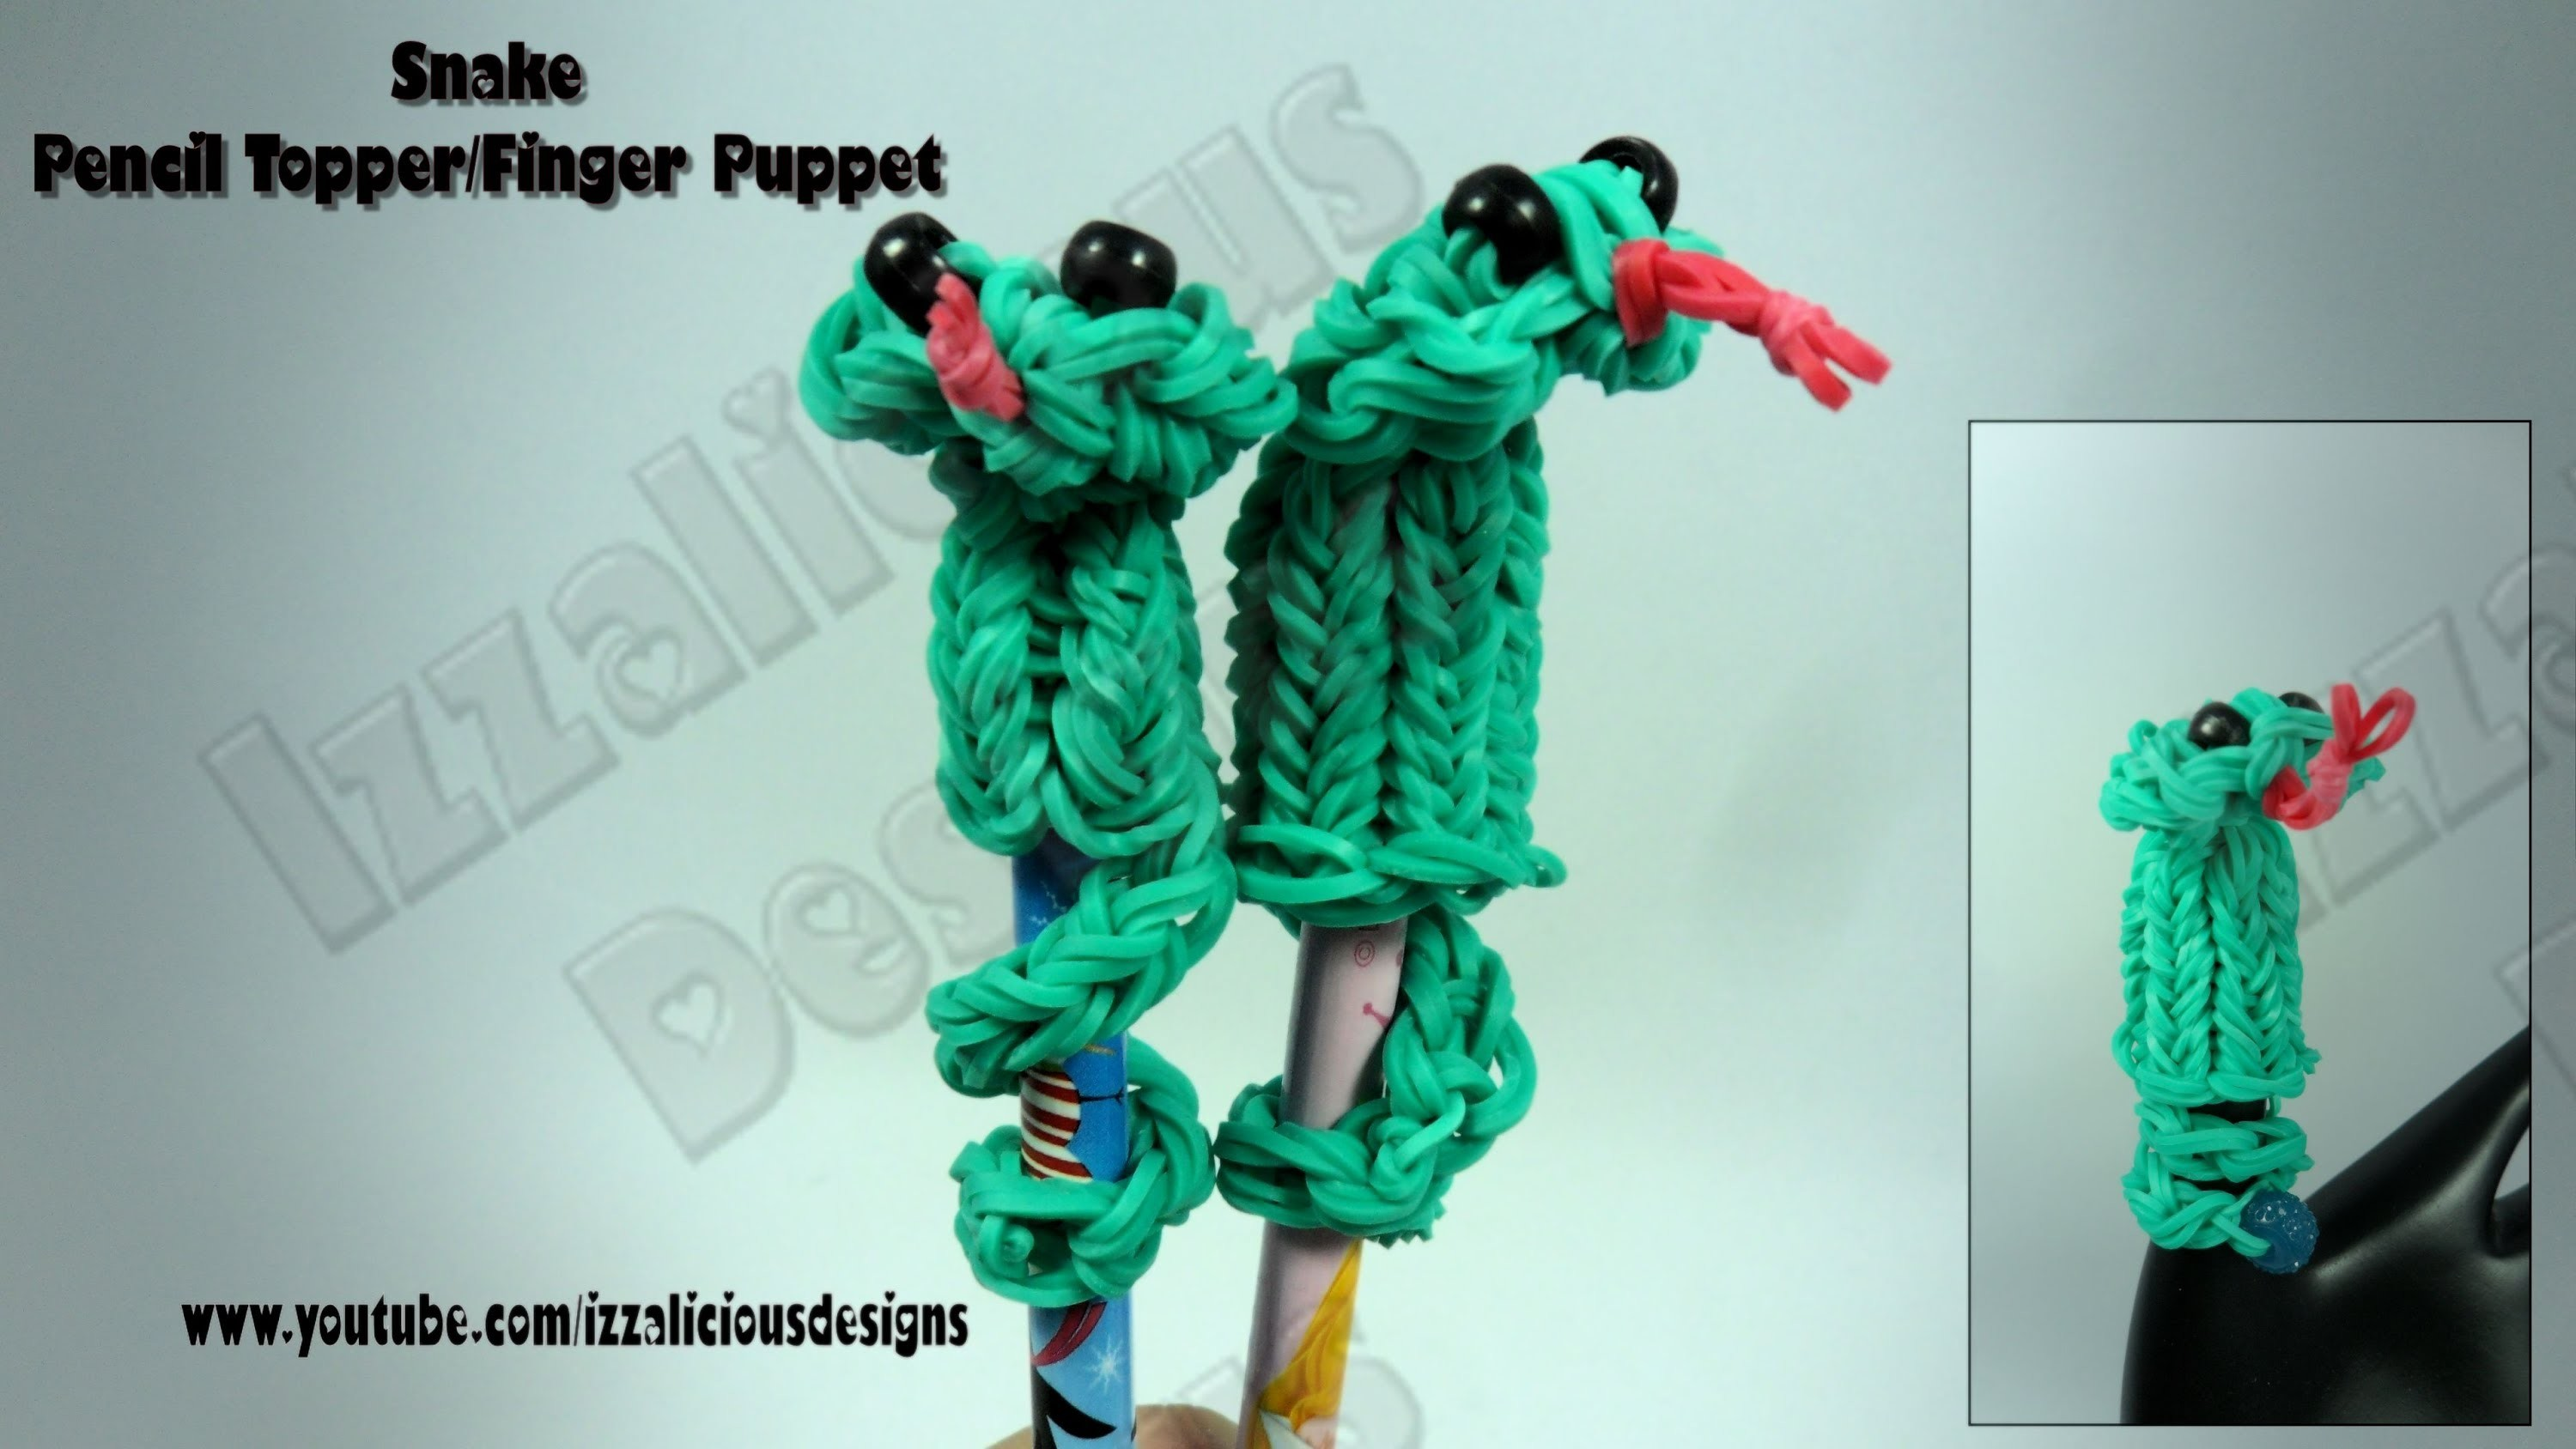 Rainbow Loom Snake Finger Puppet.Pencil Topper Charm.Action Figure - Gomitas